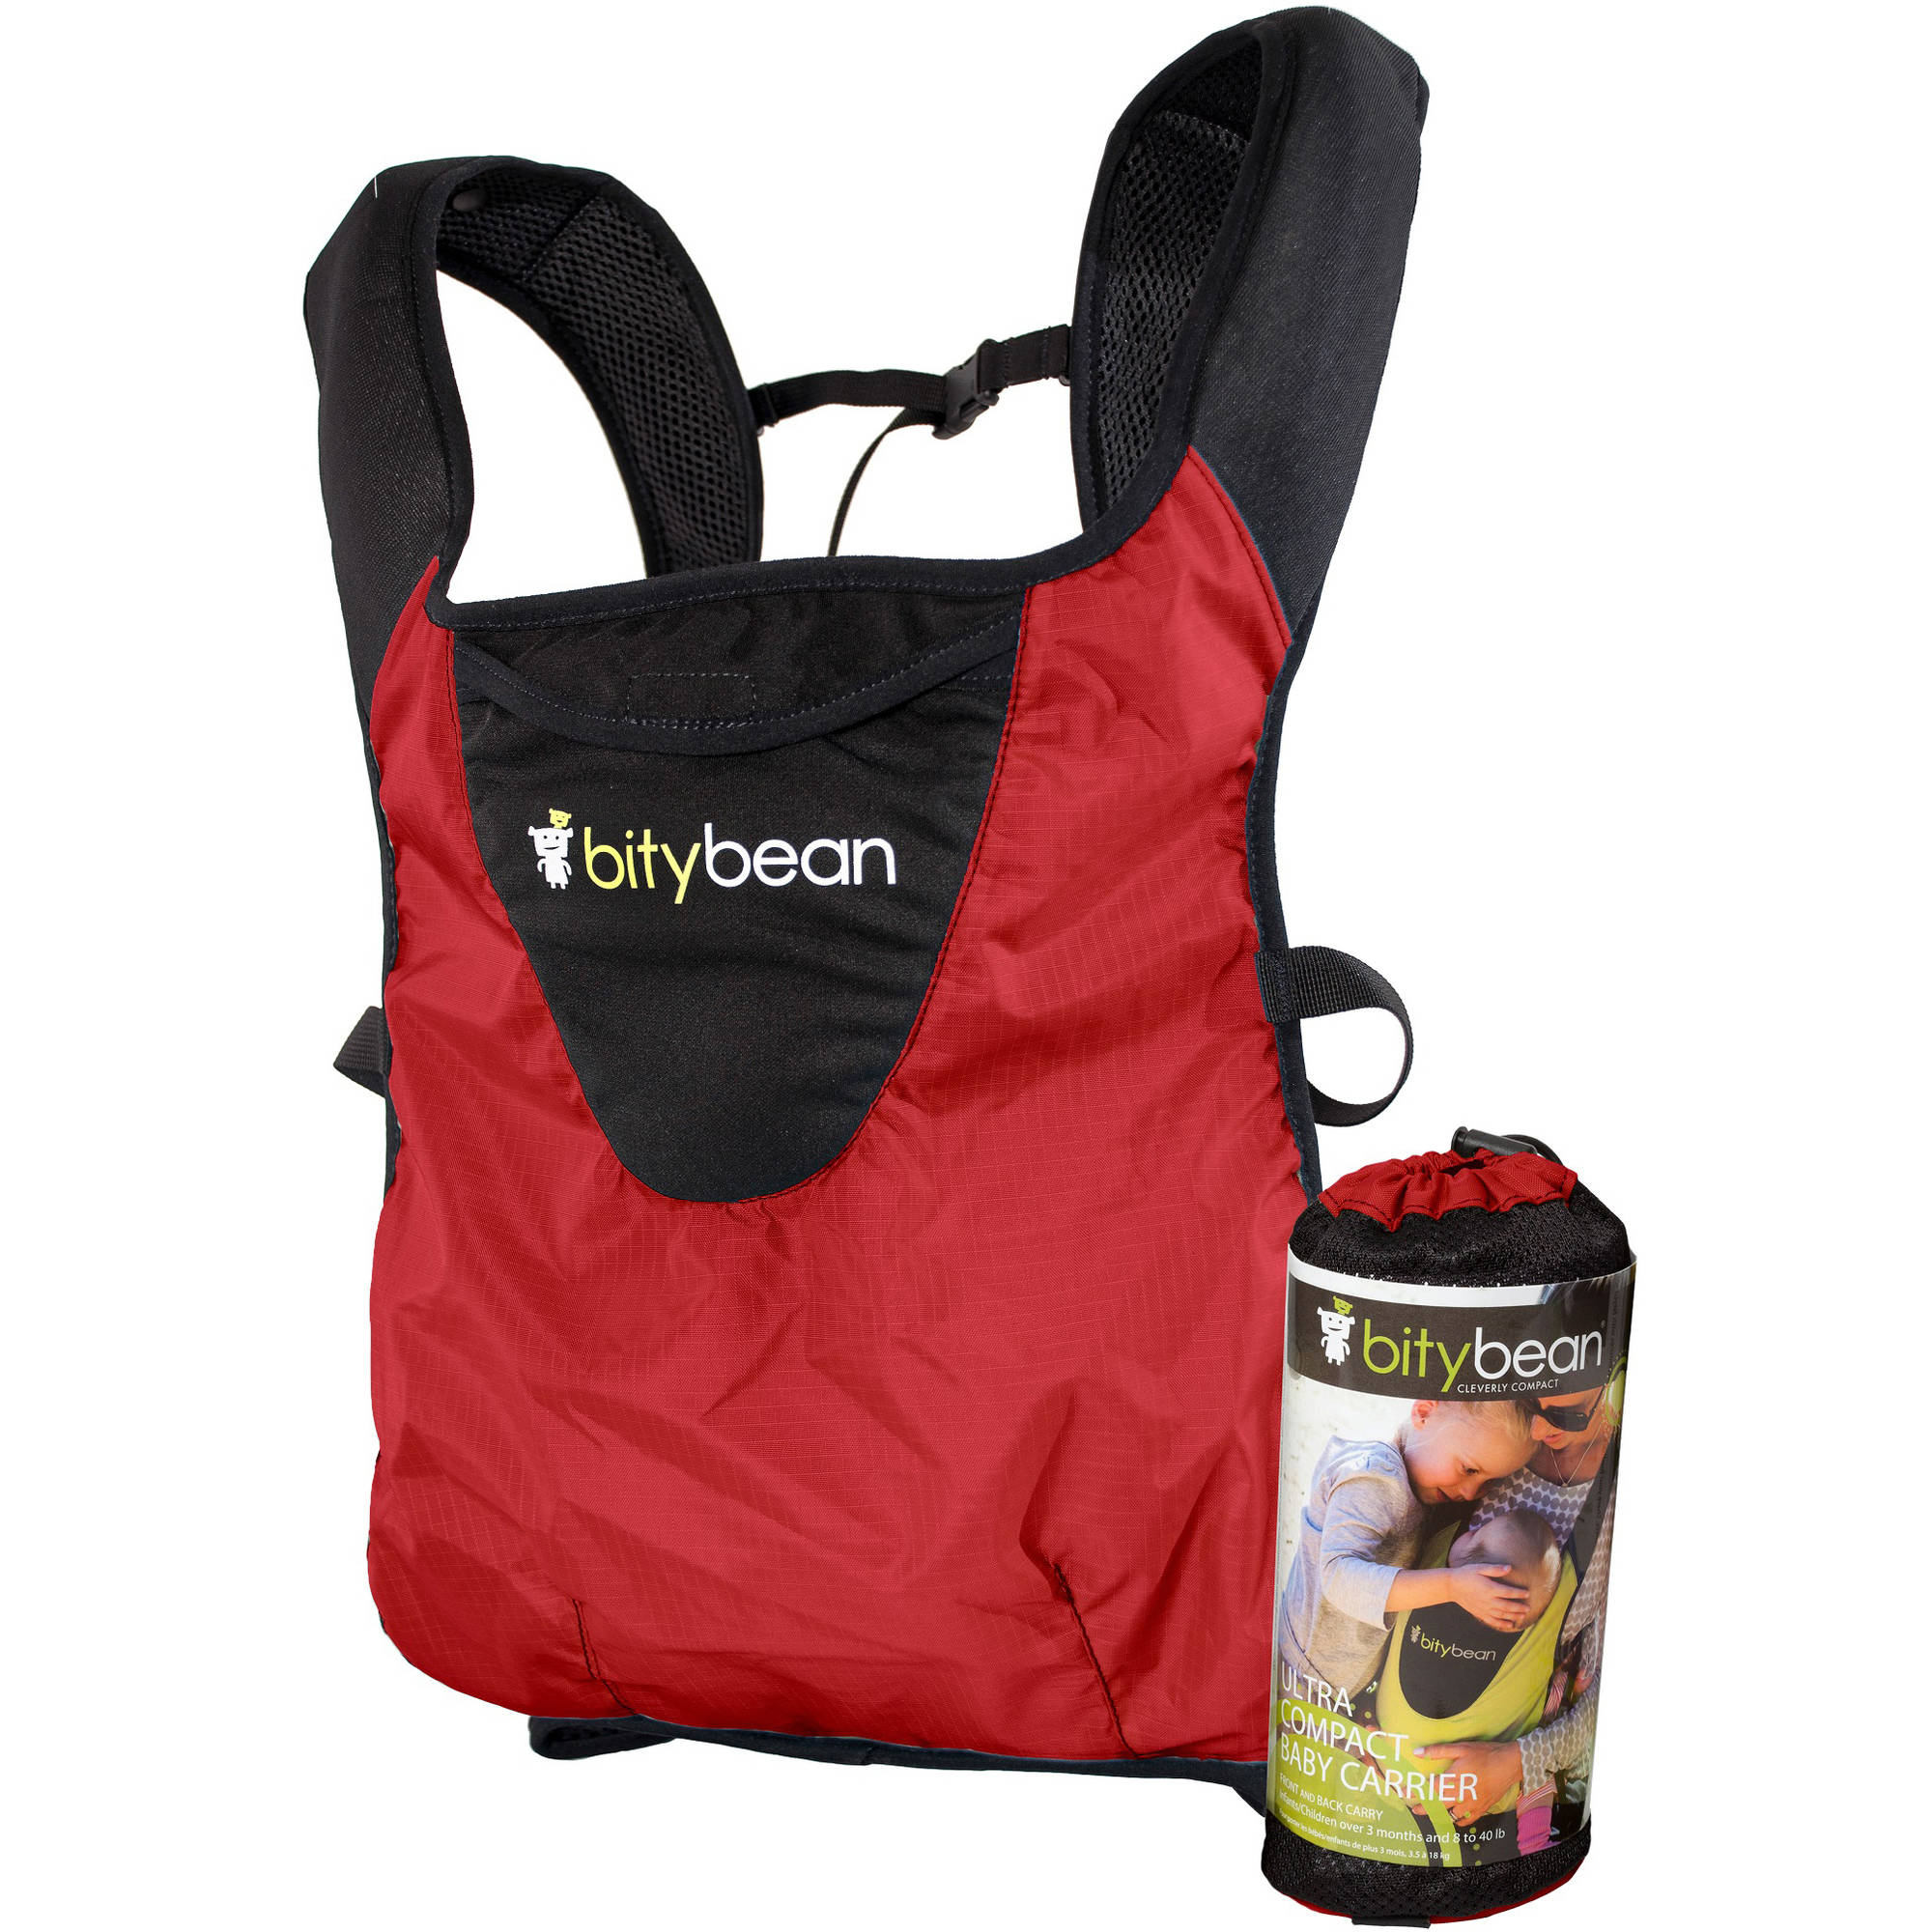 BityBean UltraCompact Baby Carrier, Tomato Red by BityBean